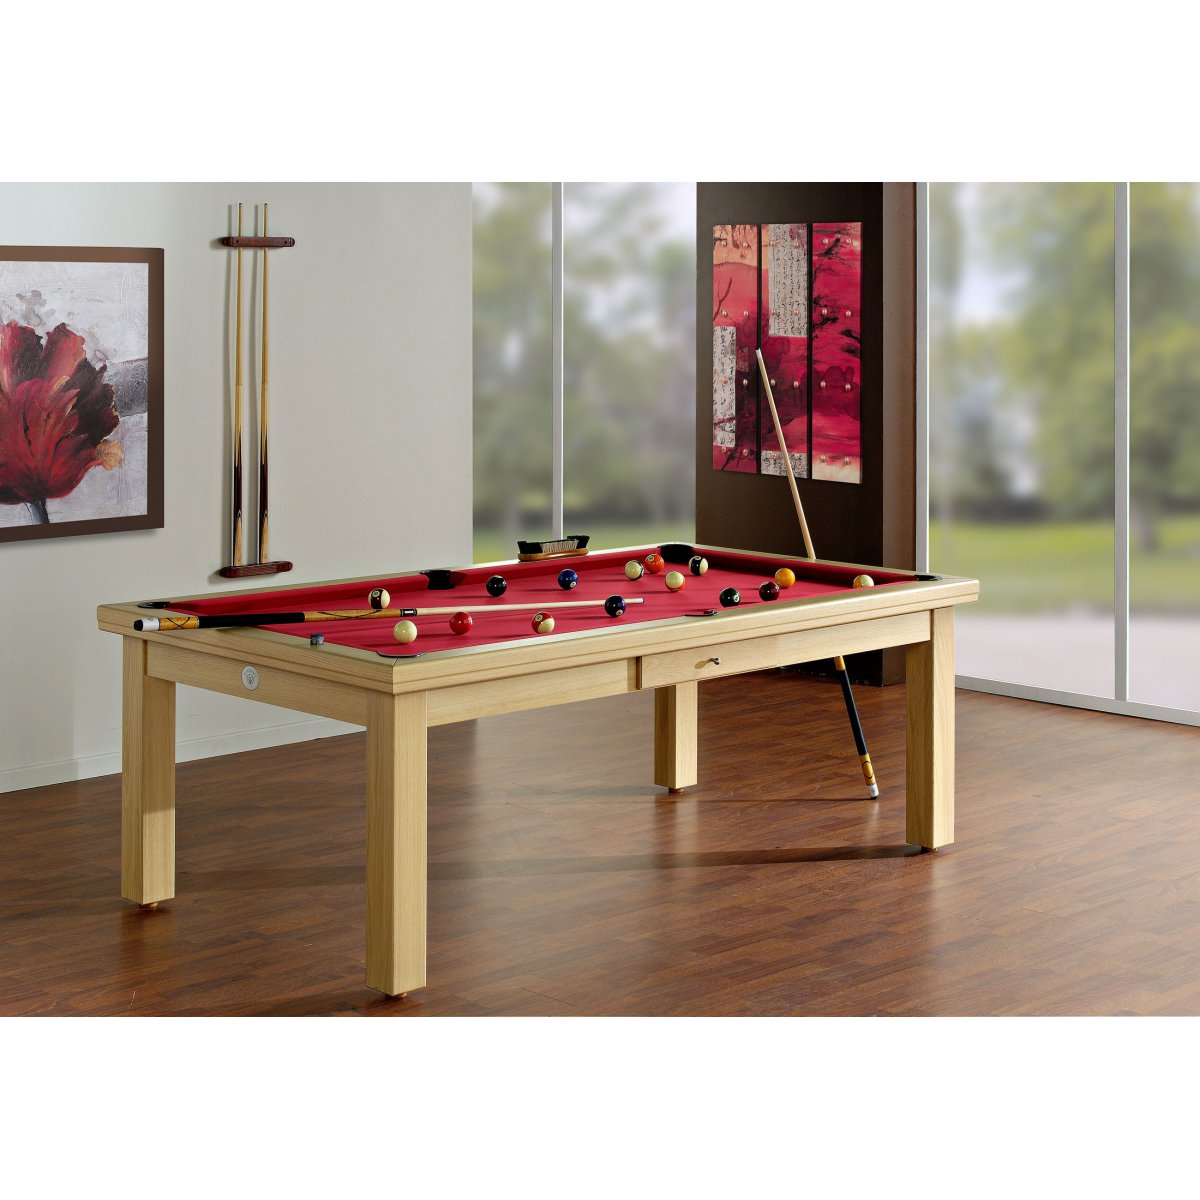 Table manger billard mod le sydney prestige - Billard et table a manger ...